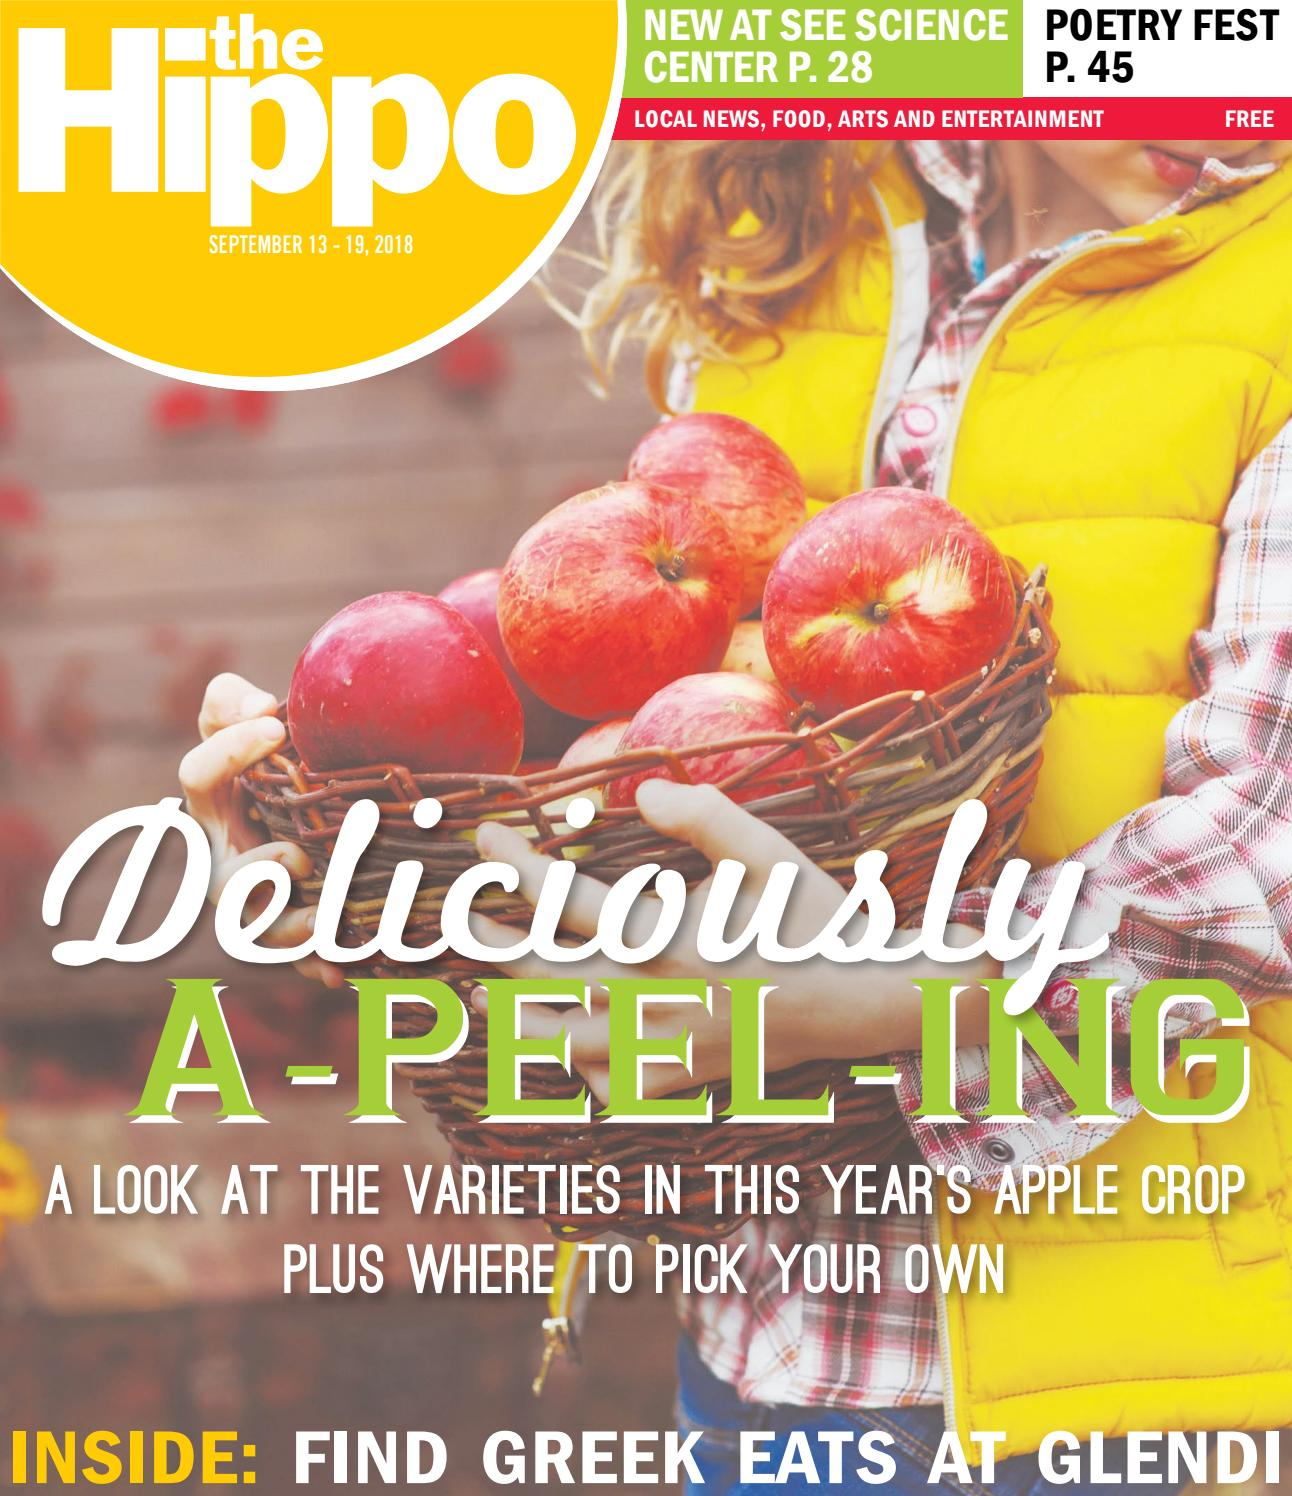 9269484ea34 Hippo 9-13-18 by The Hippo - issuu